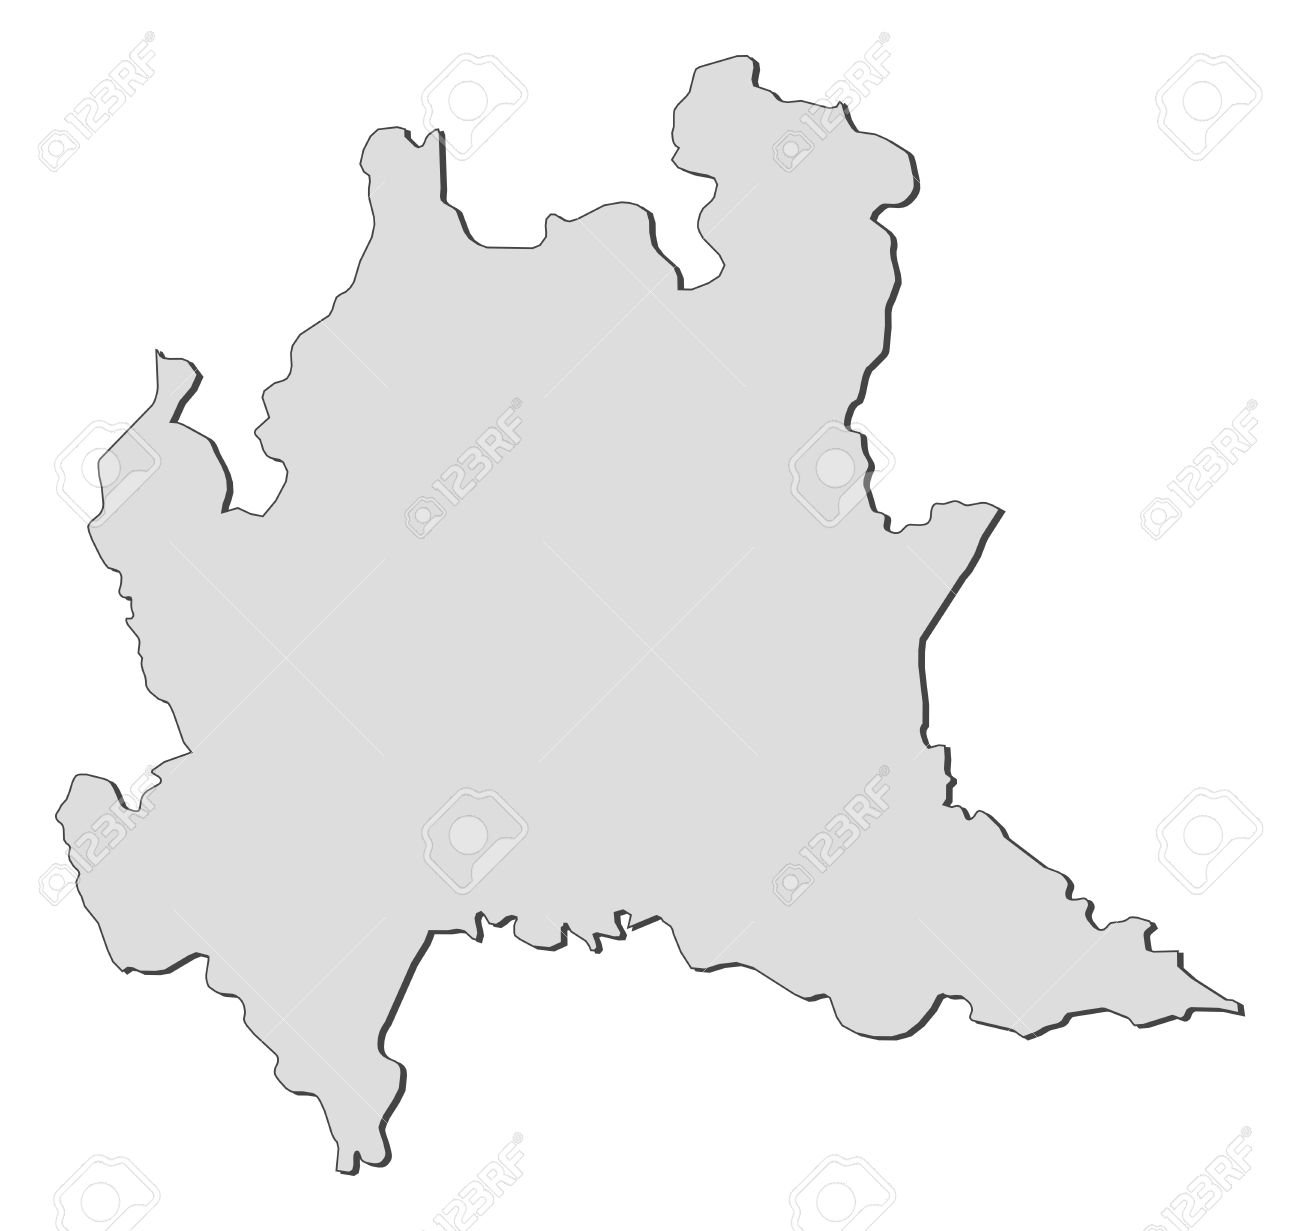 Map of Lombardy, a region of Italy. - 14396198